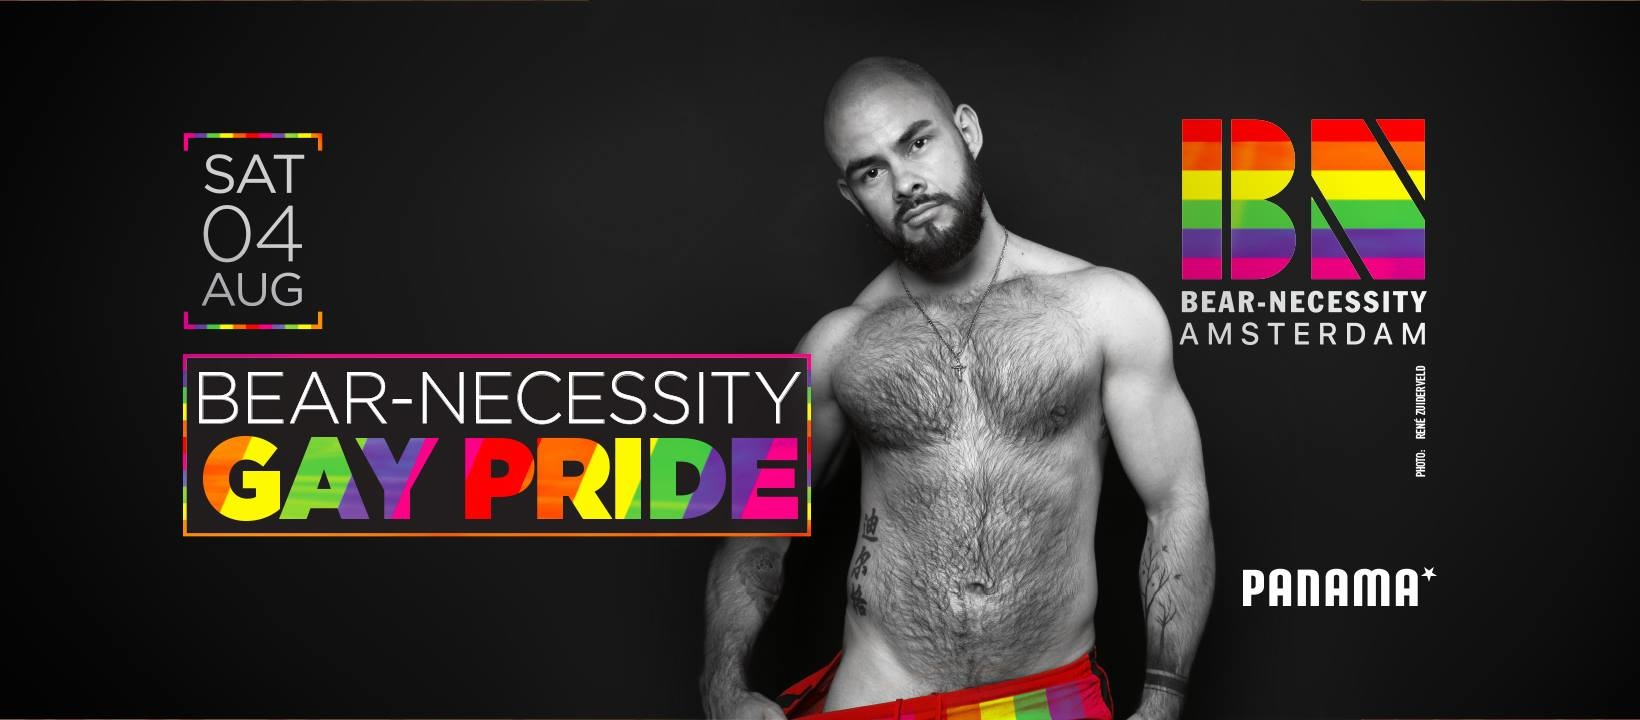 agenda and online tickets for Amsterdam Gay Pride